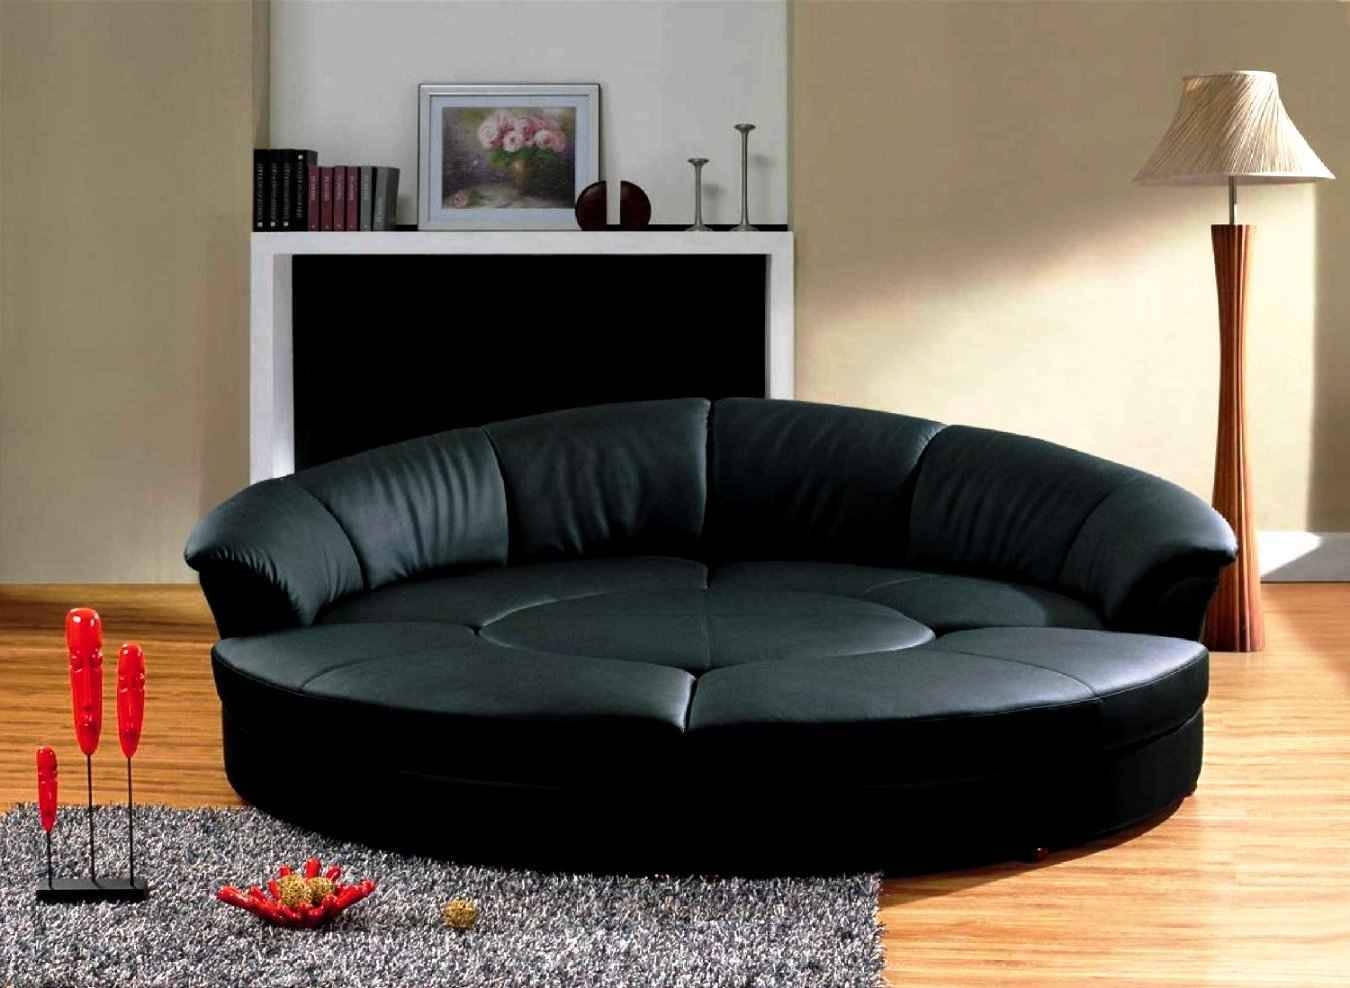 Furniture Home: Attractive Round Sofa Chair Chairs Vig Furniture with regard to Circular Sofa Chairs (Image 5 of 30)